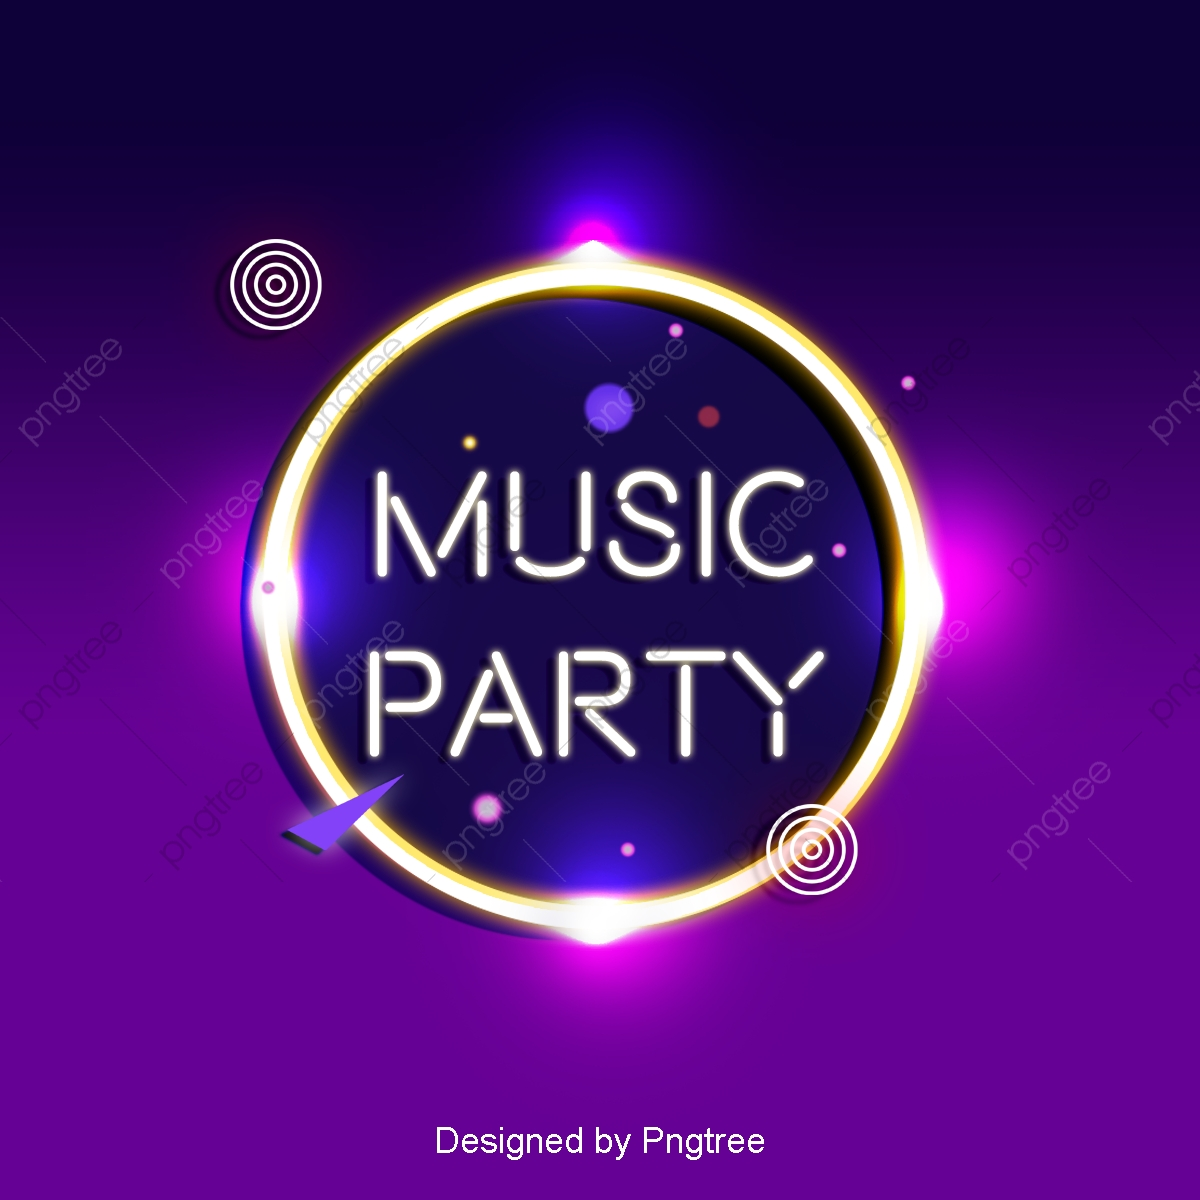 Fashion Music Party Background With Neon Effect Banner